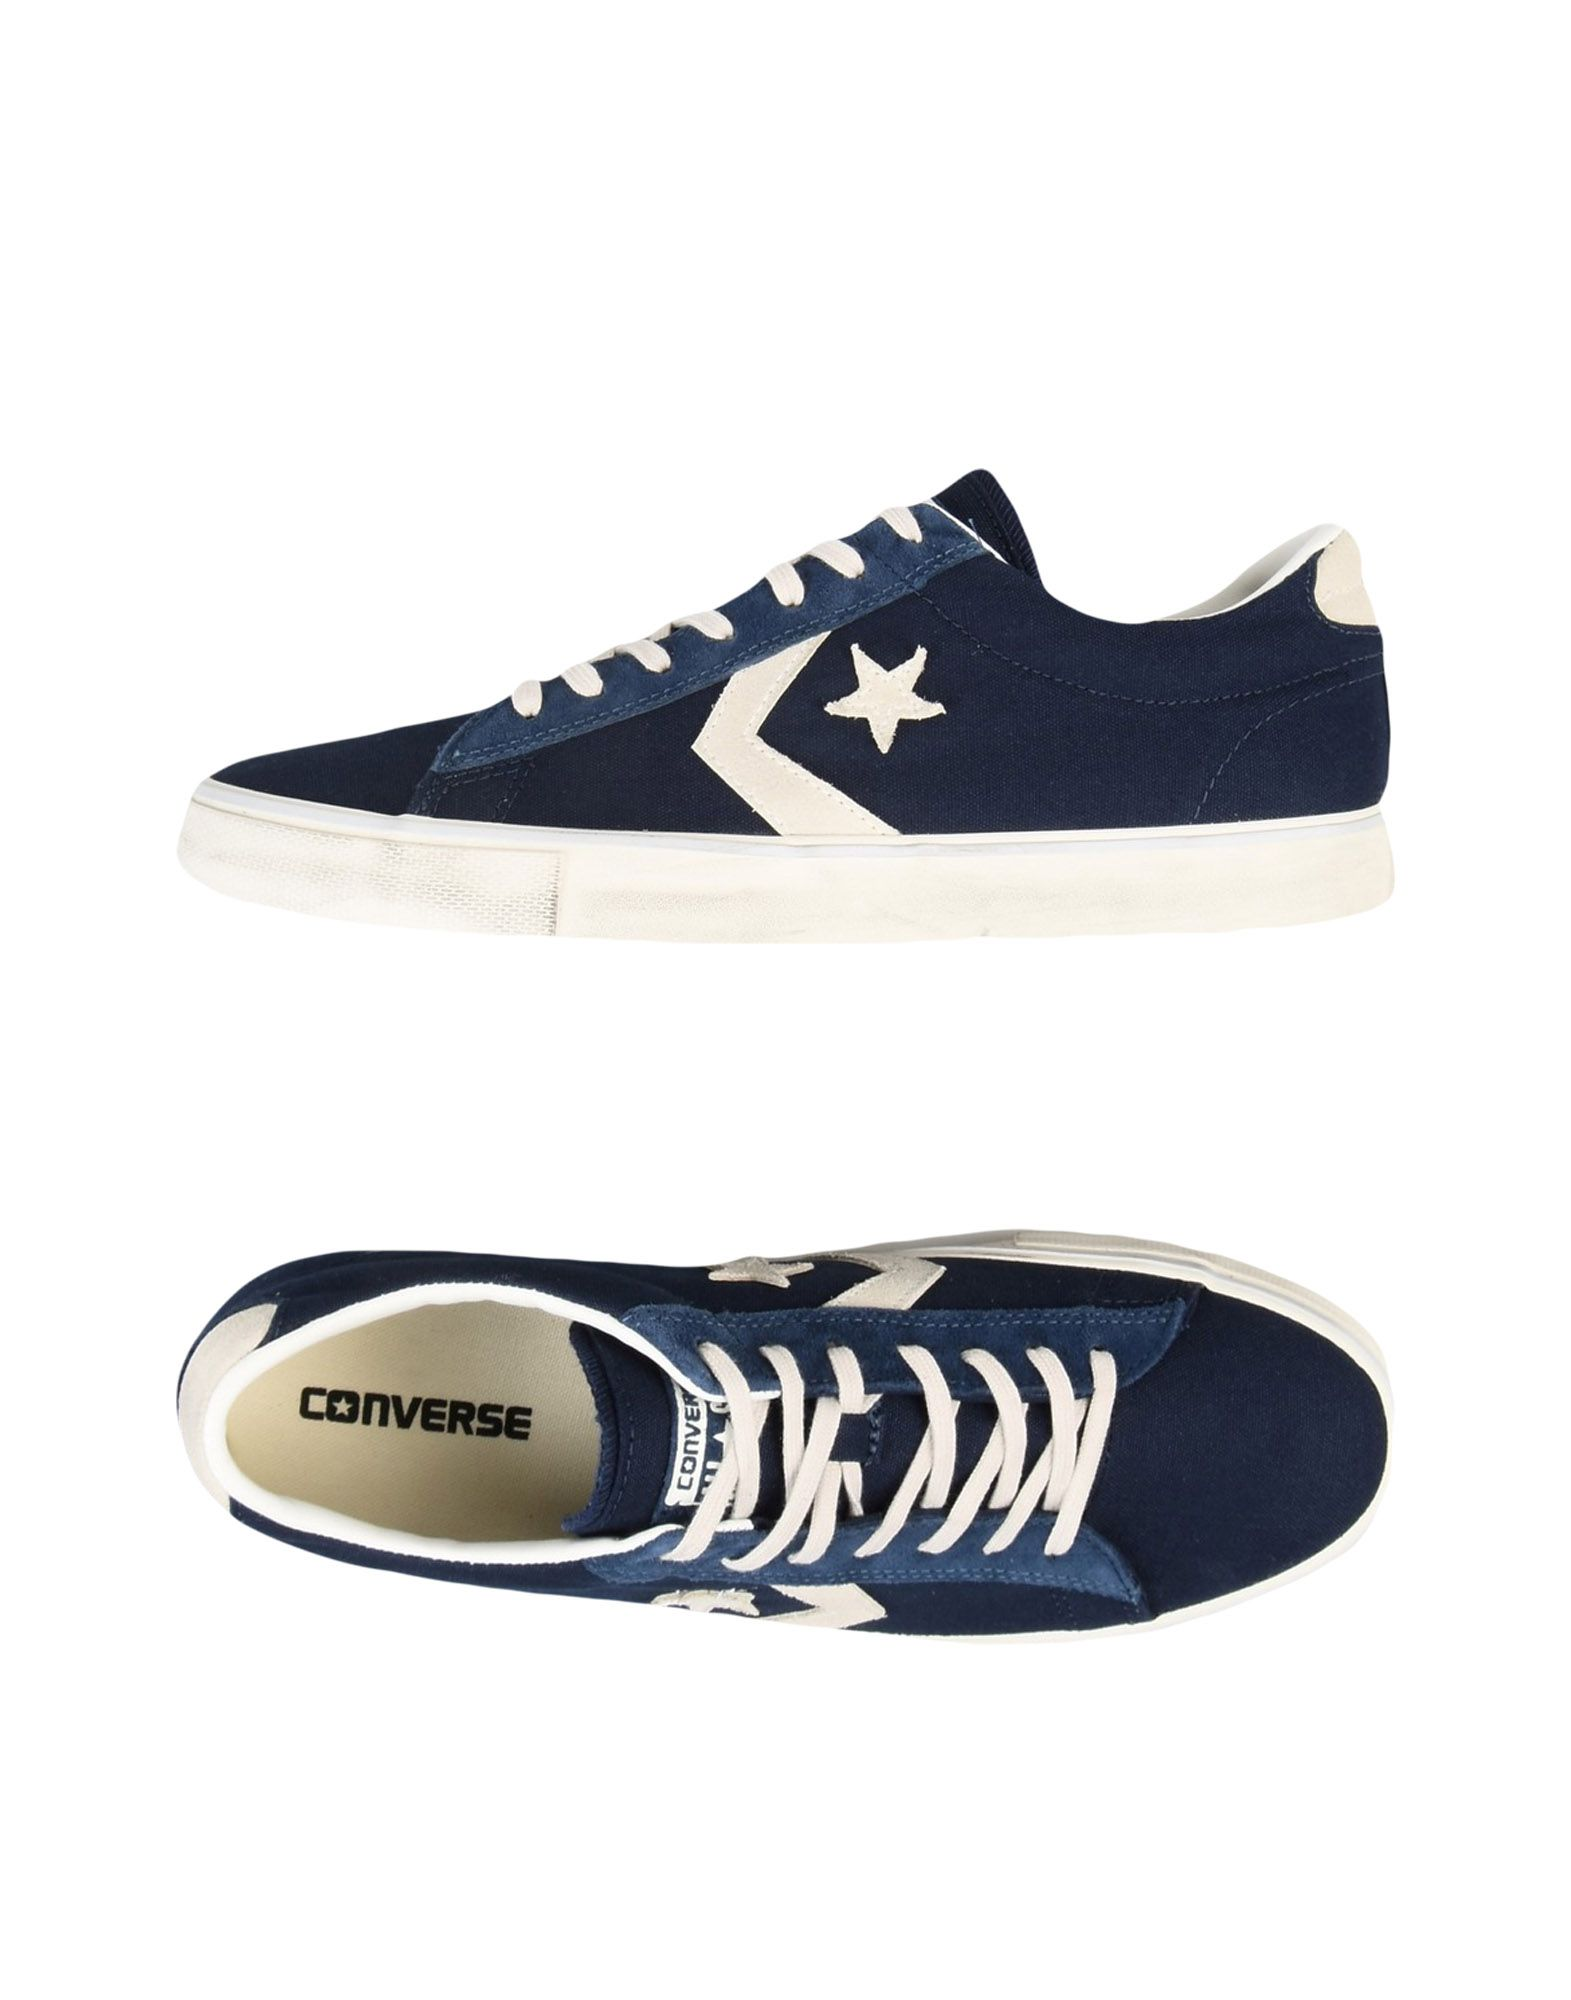 Sneakers Converse Cons Pro Leather Vulc Ox Canvas Distressed - Uomo - 11216614FP